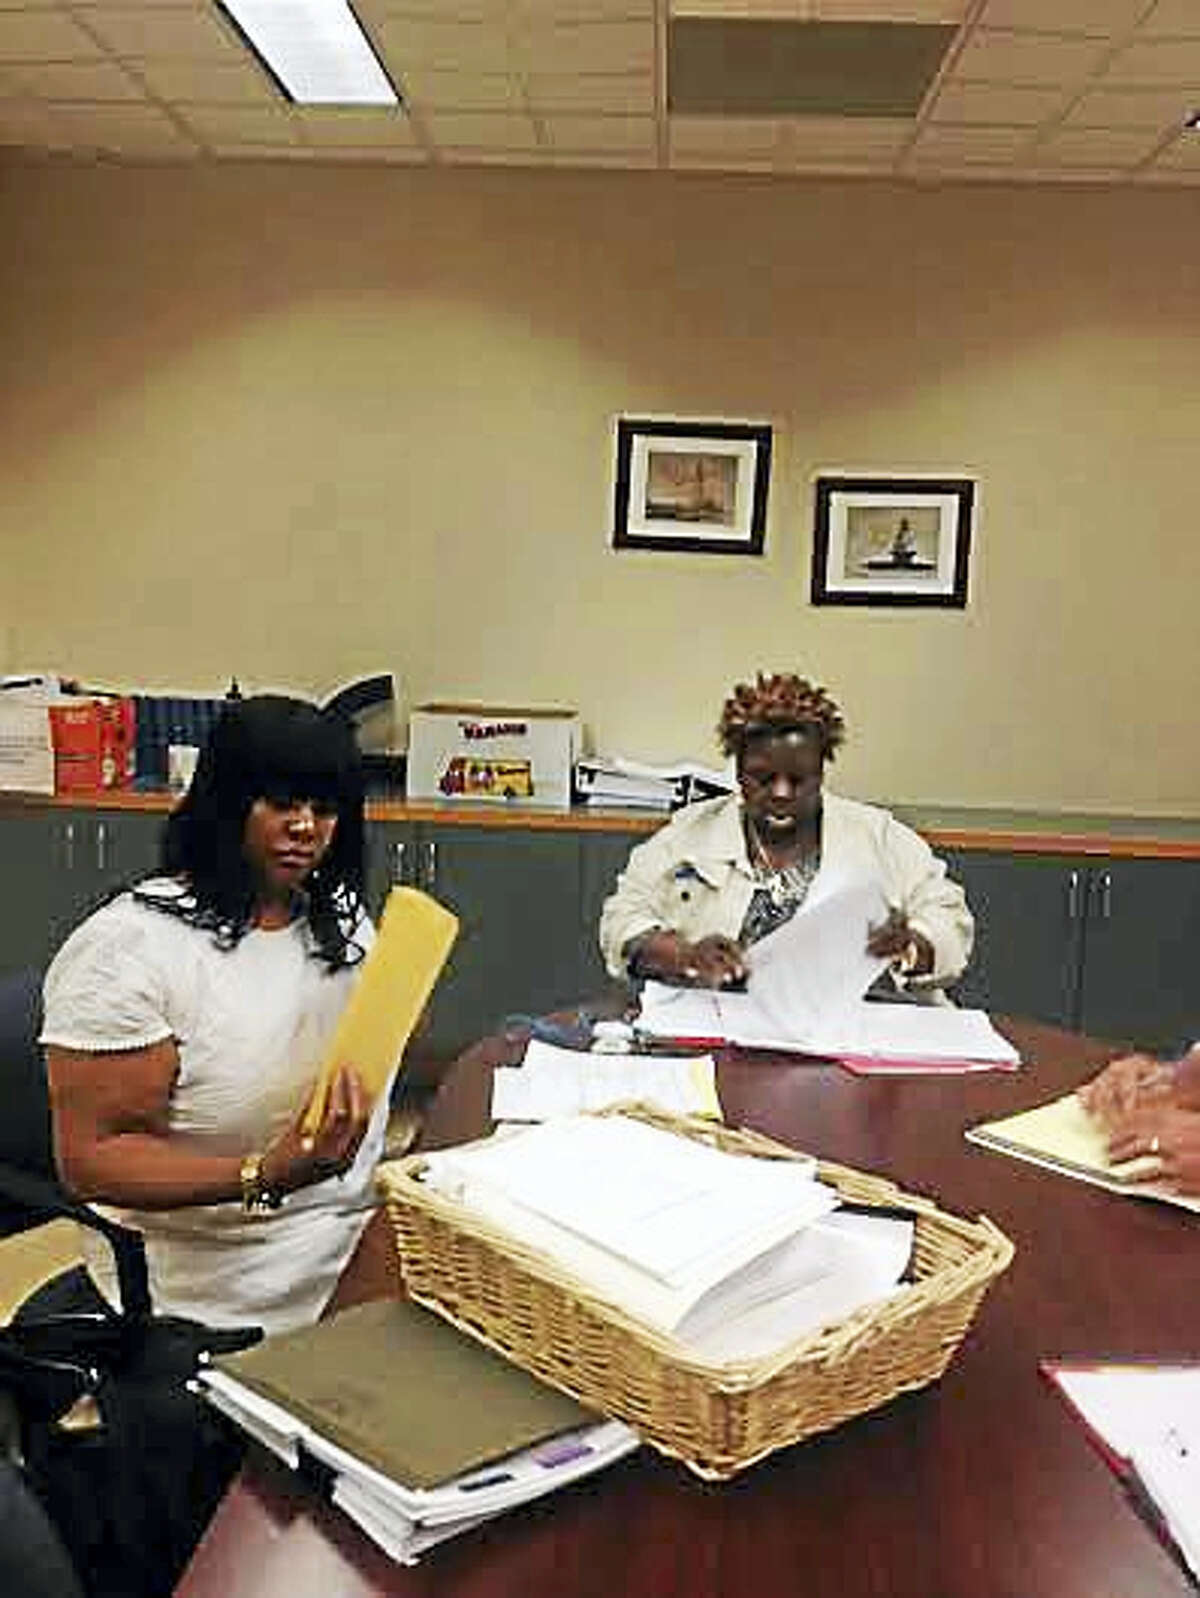 Jacqueline James, left, and Cherlyn Poindexter, president of Local 3144, at disciplinary hearing on June 6.